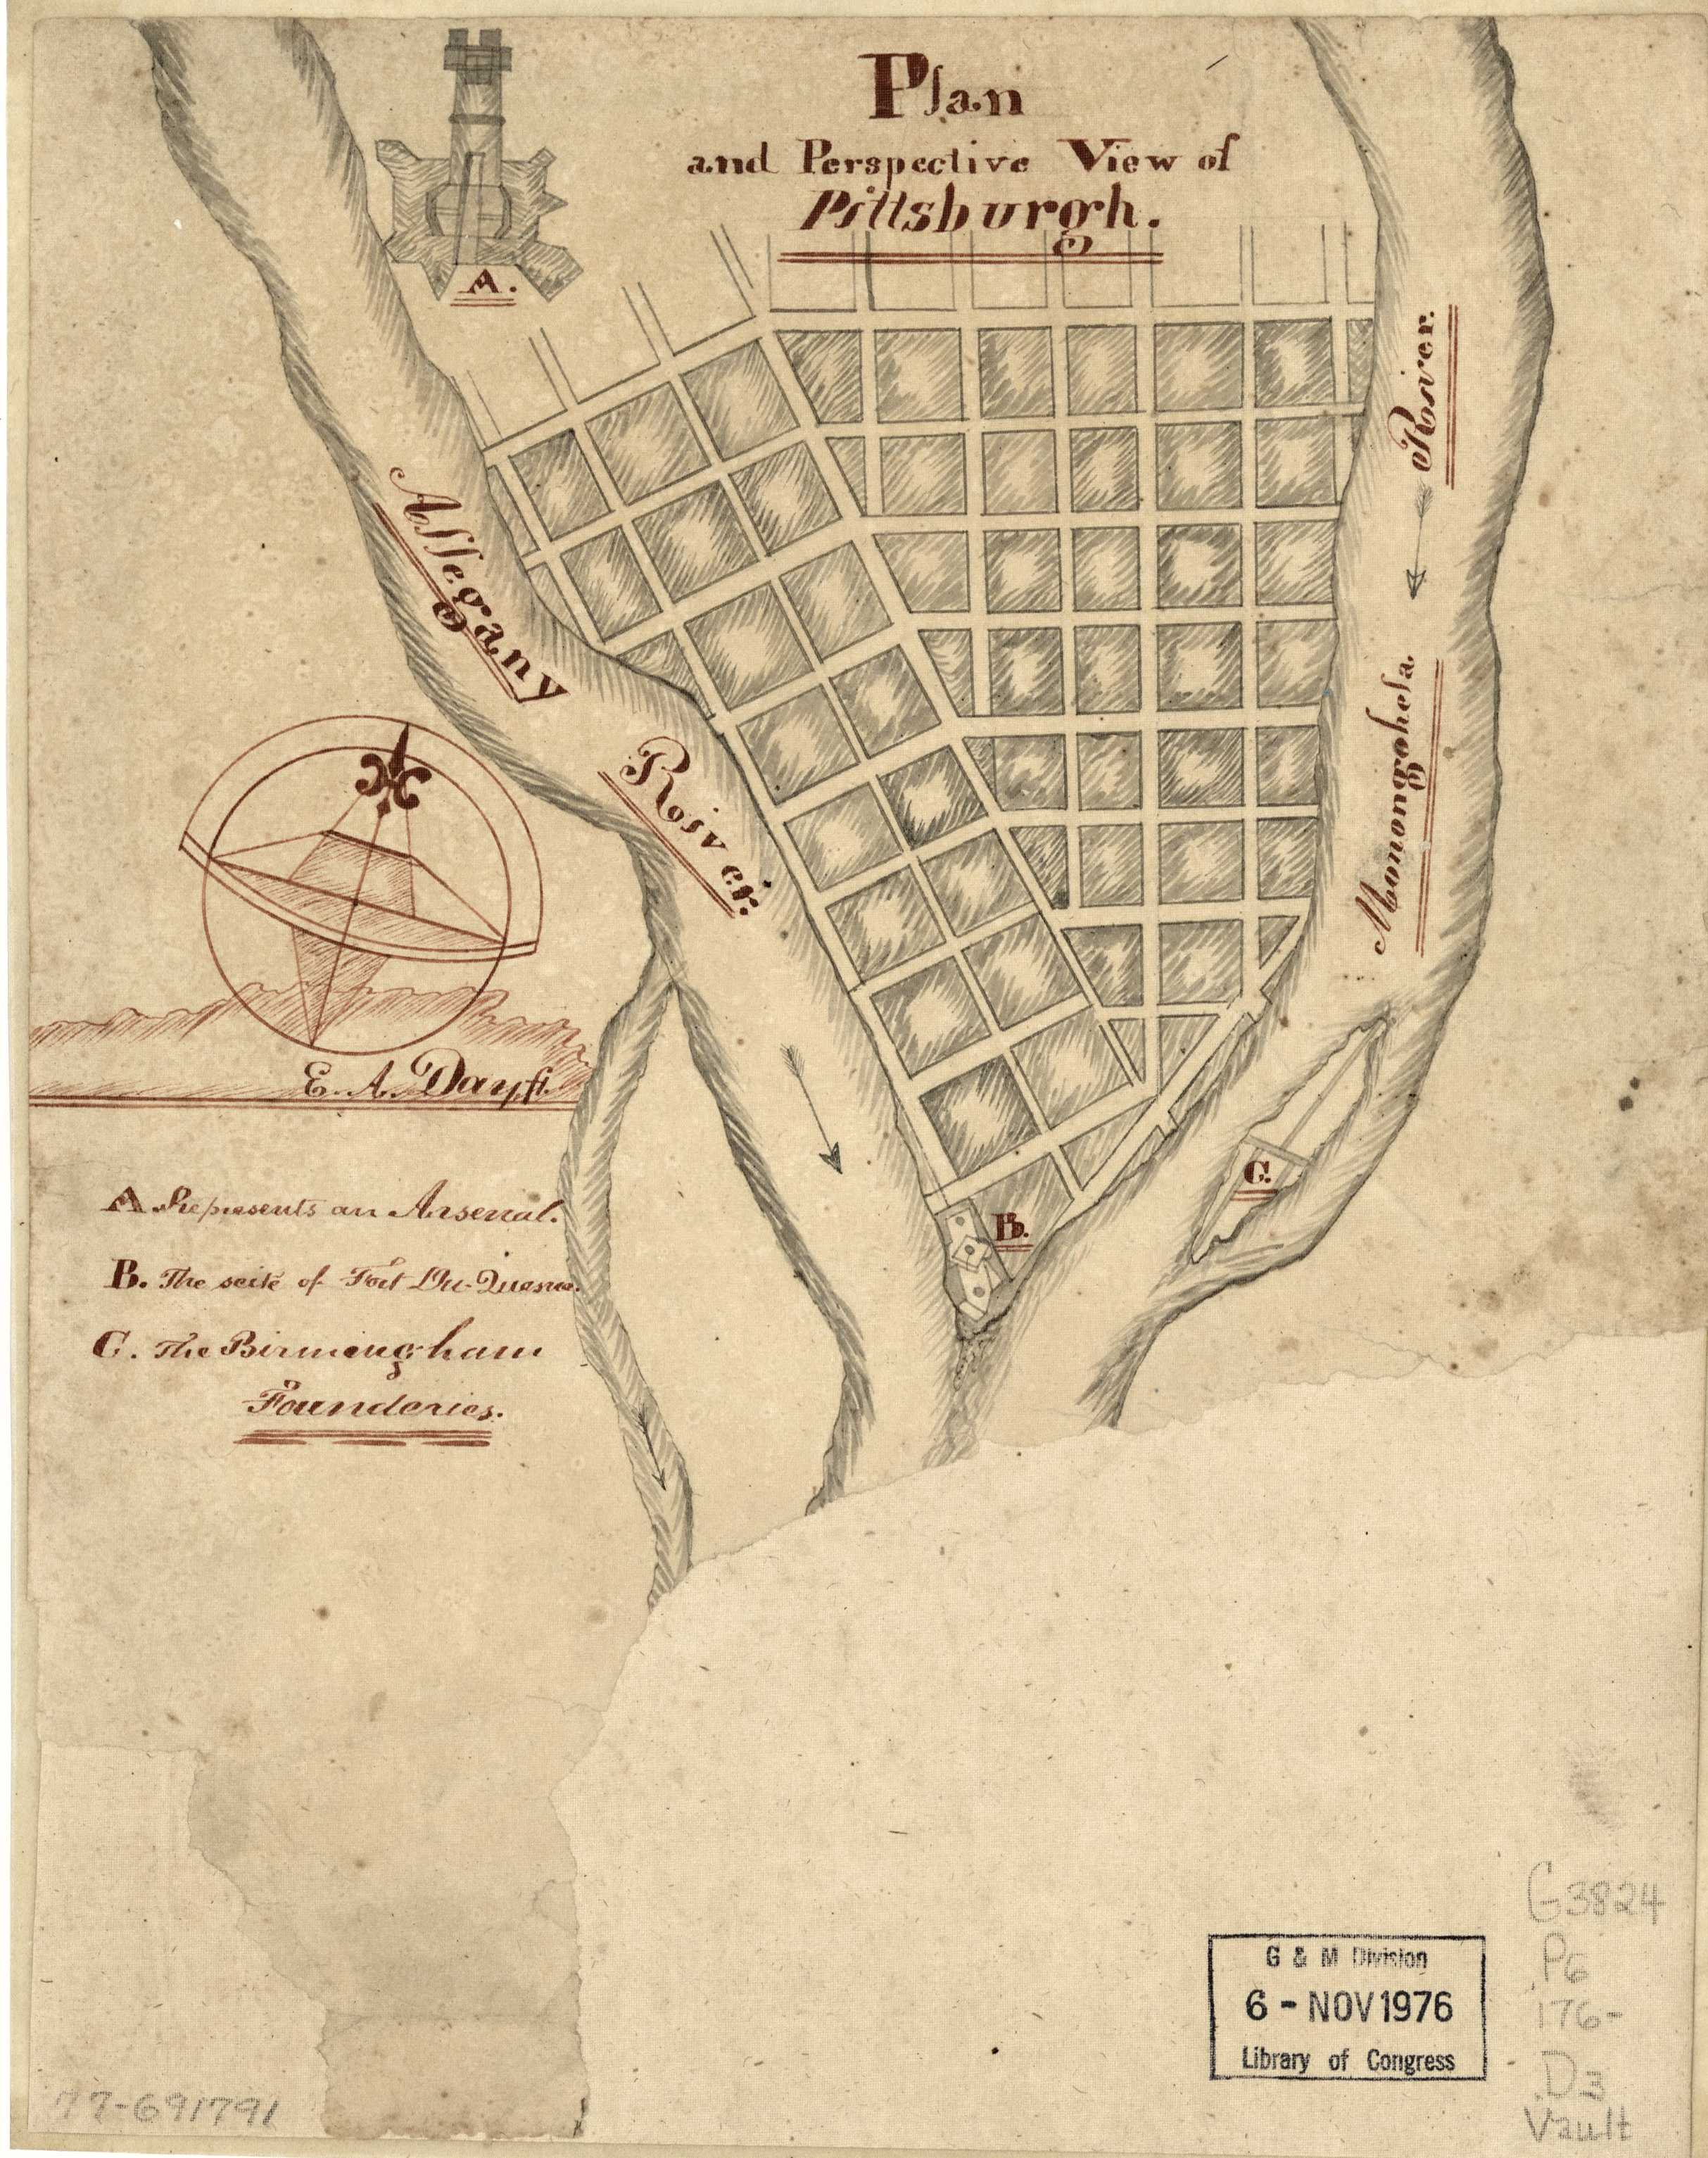 1760.2 A PLAN AND PERSPECTIVE VIEW OF PITTSBURGH. E. A. Day. This is a  manuscript map of uncertain date; Sellers & van Ee (#1330) place it circa  1760s.